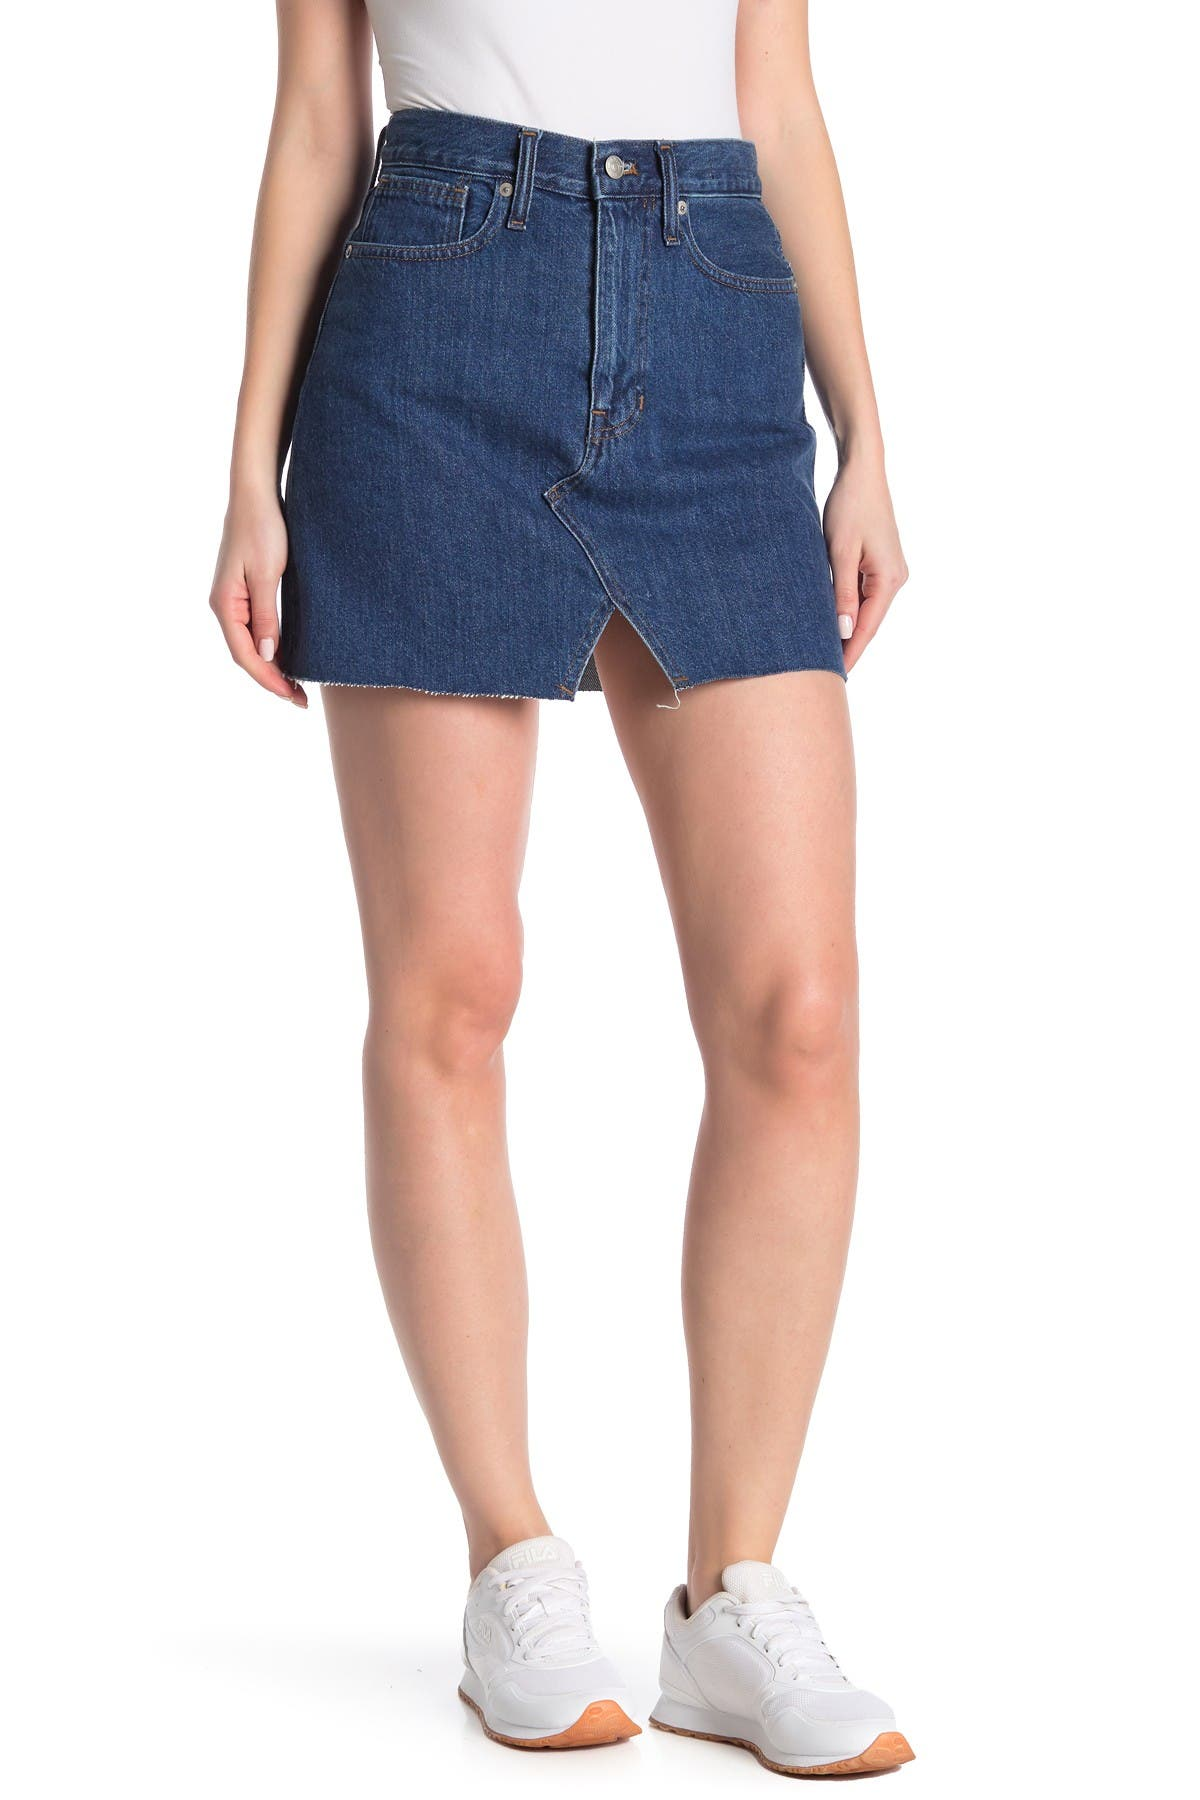 Image of Madewell McCaren Cutout Denim Mini Skirt